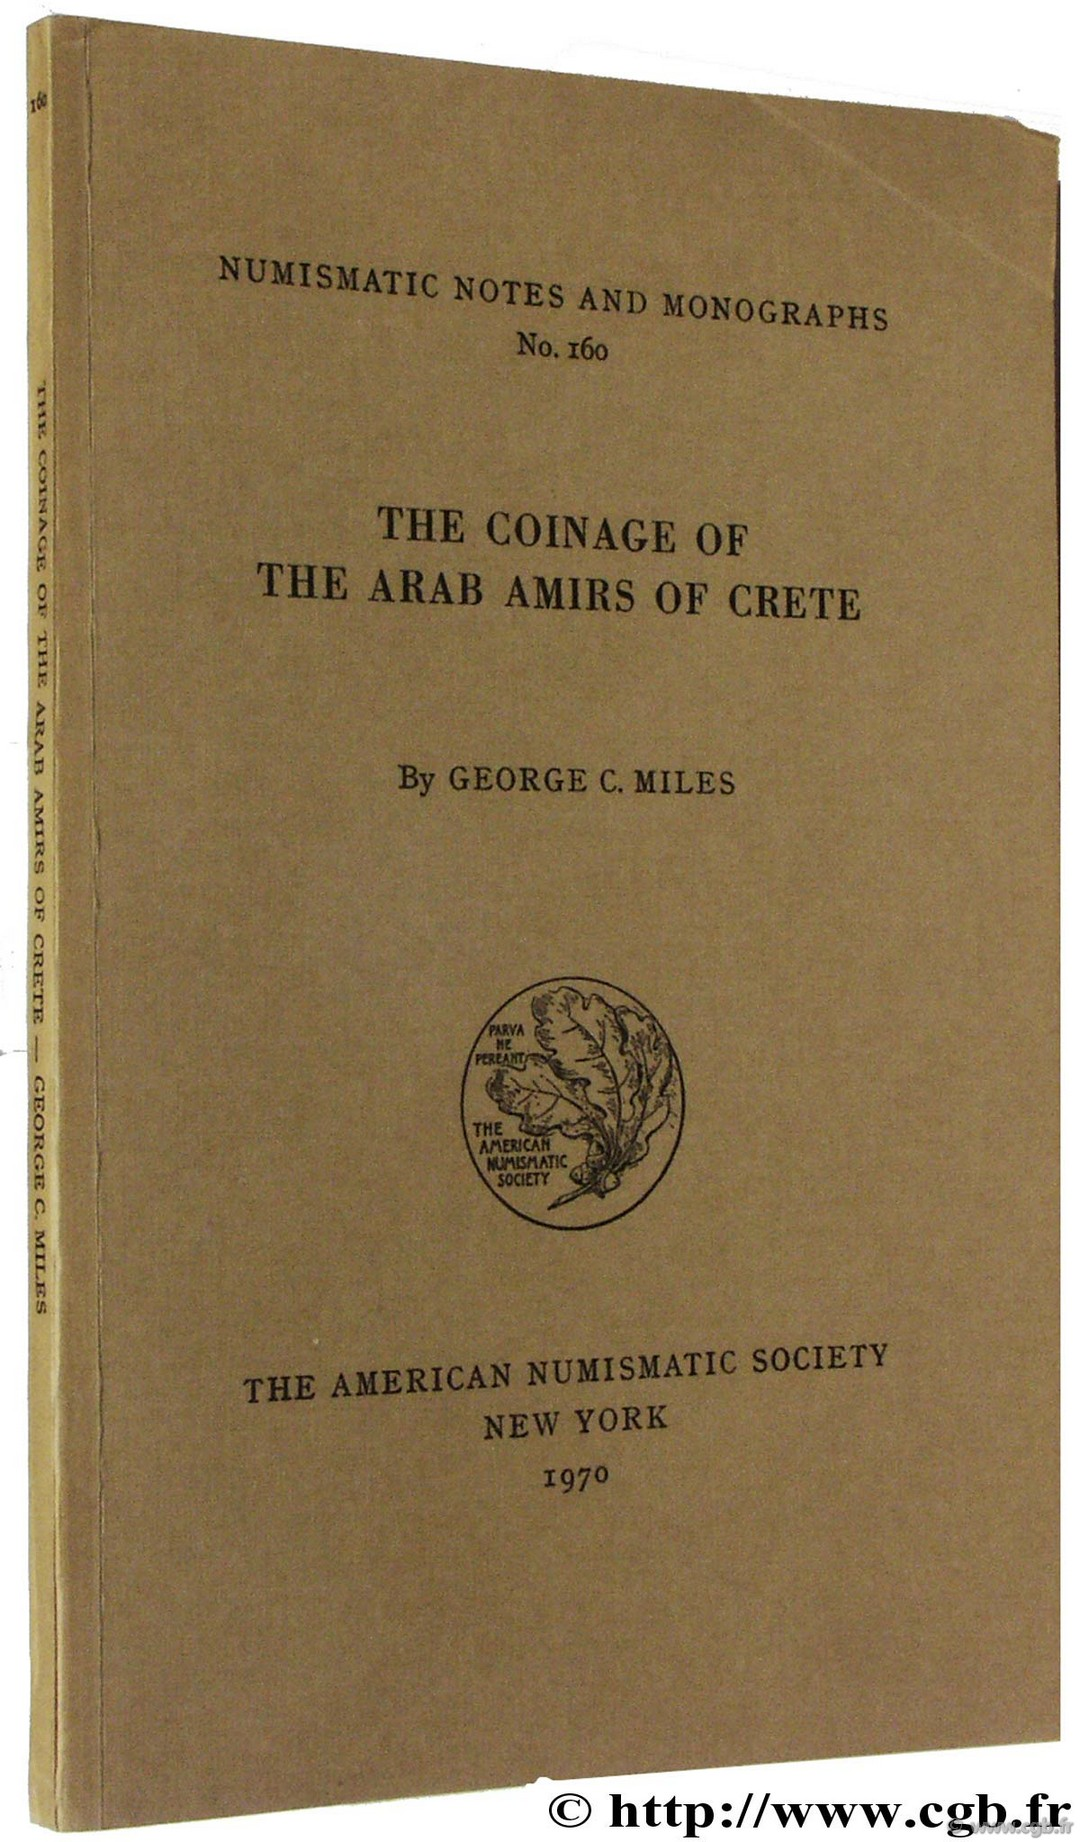 The Coinage of the Arab Amirs of Crete, NNM n° 160 MILES G.-C.